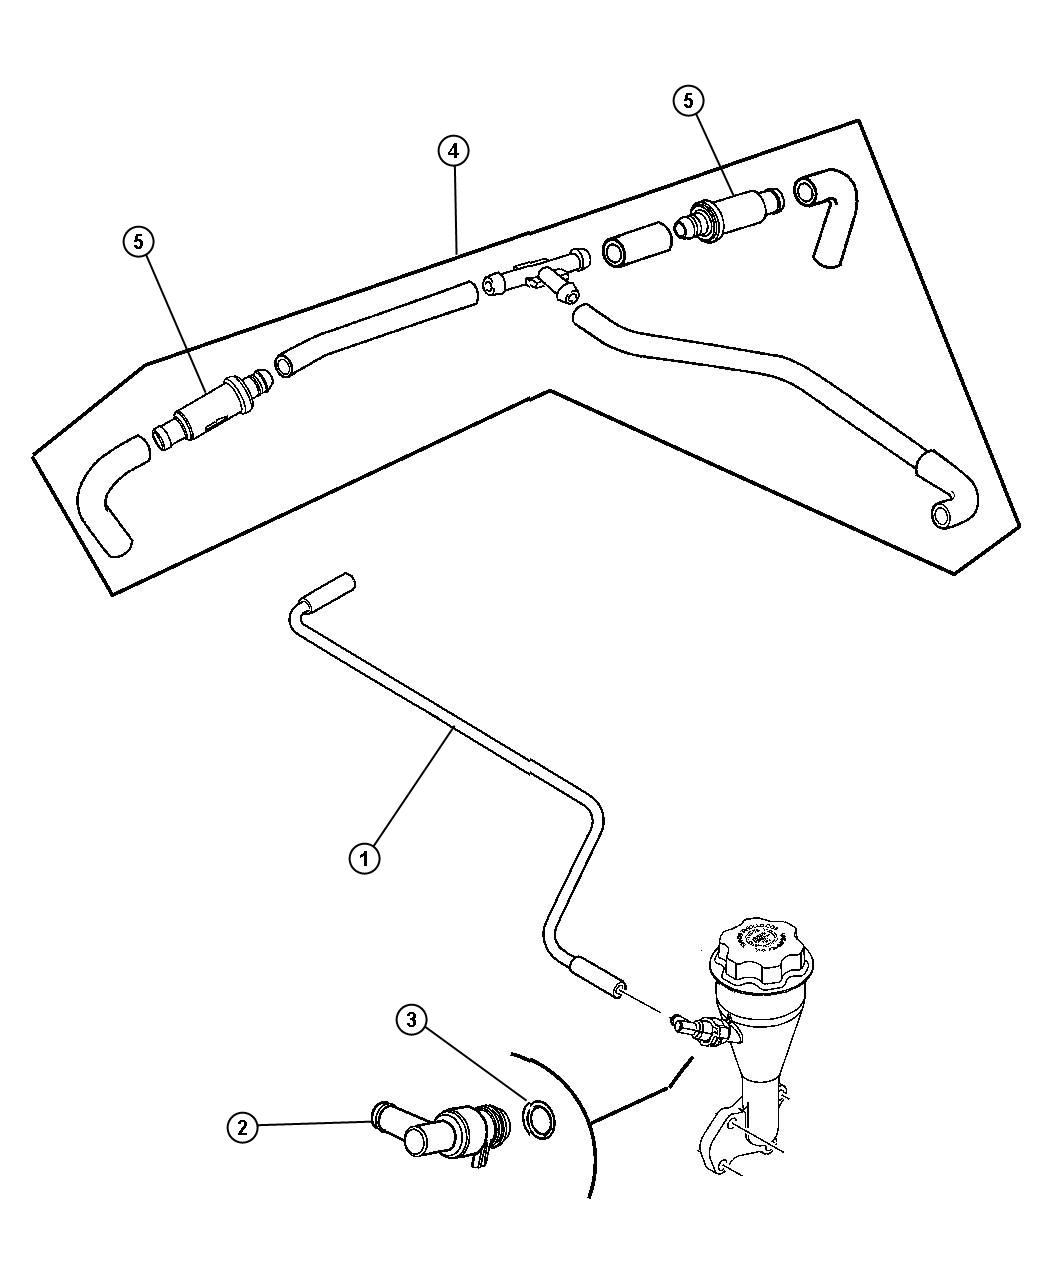 T25602076 Geta 96dodge brake line diagram in addition Transmission parts besides Ford 6 0 Oil Flow Diagram moreover 5 3 Vortec Wiring Diagram together with Gmc 6 6l Duramax Diesel Engine Diagram. on 1994 s10 v6 vacuum diagram